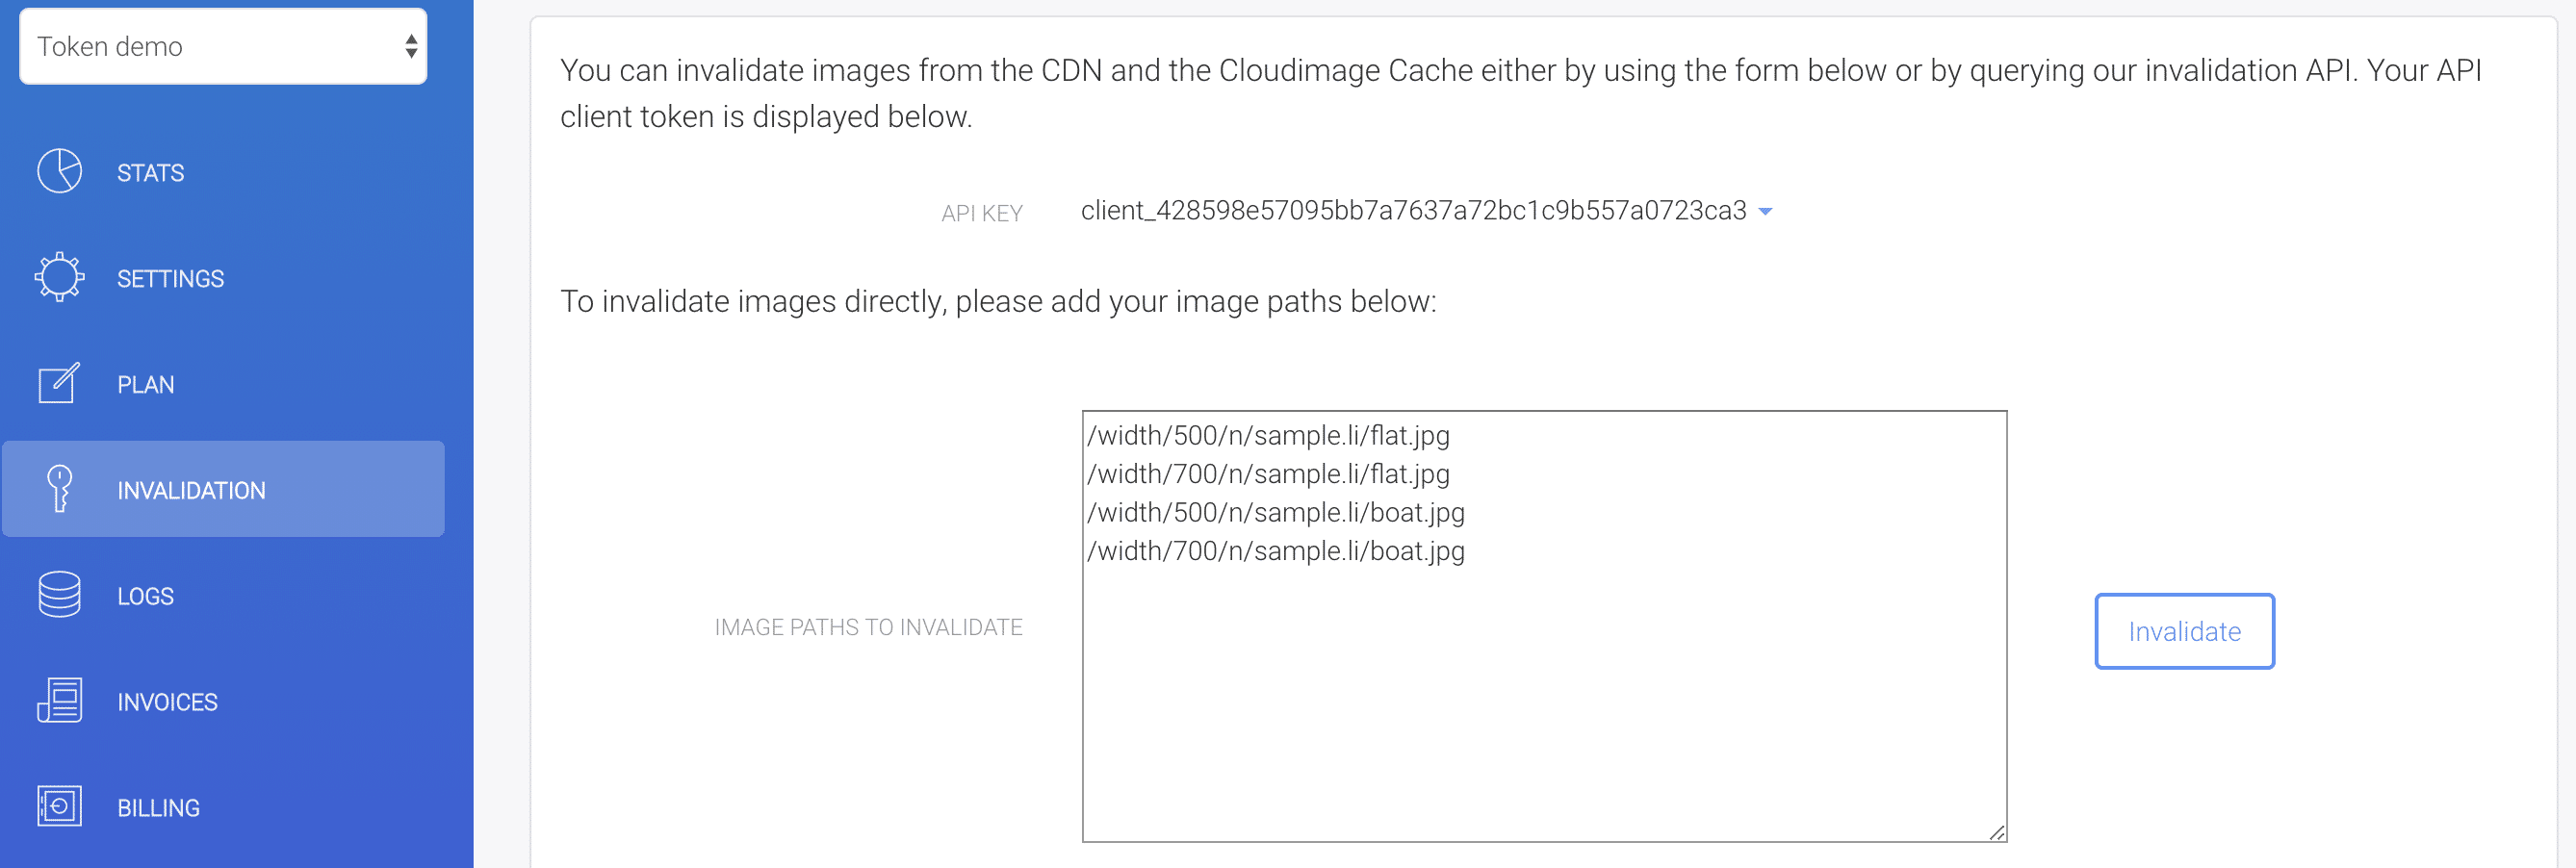 Invalidate the image from the CDN and Cloudimage caches